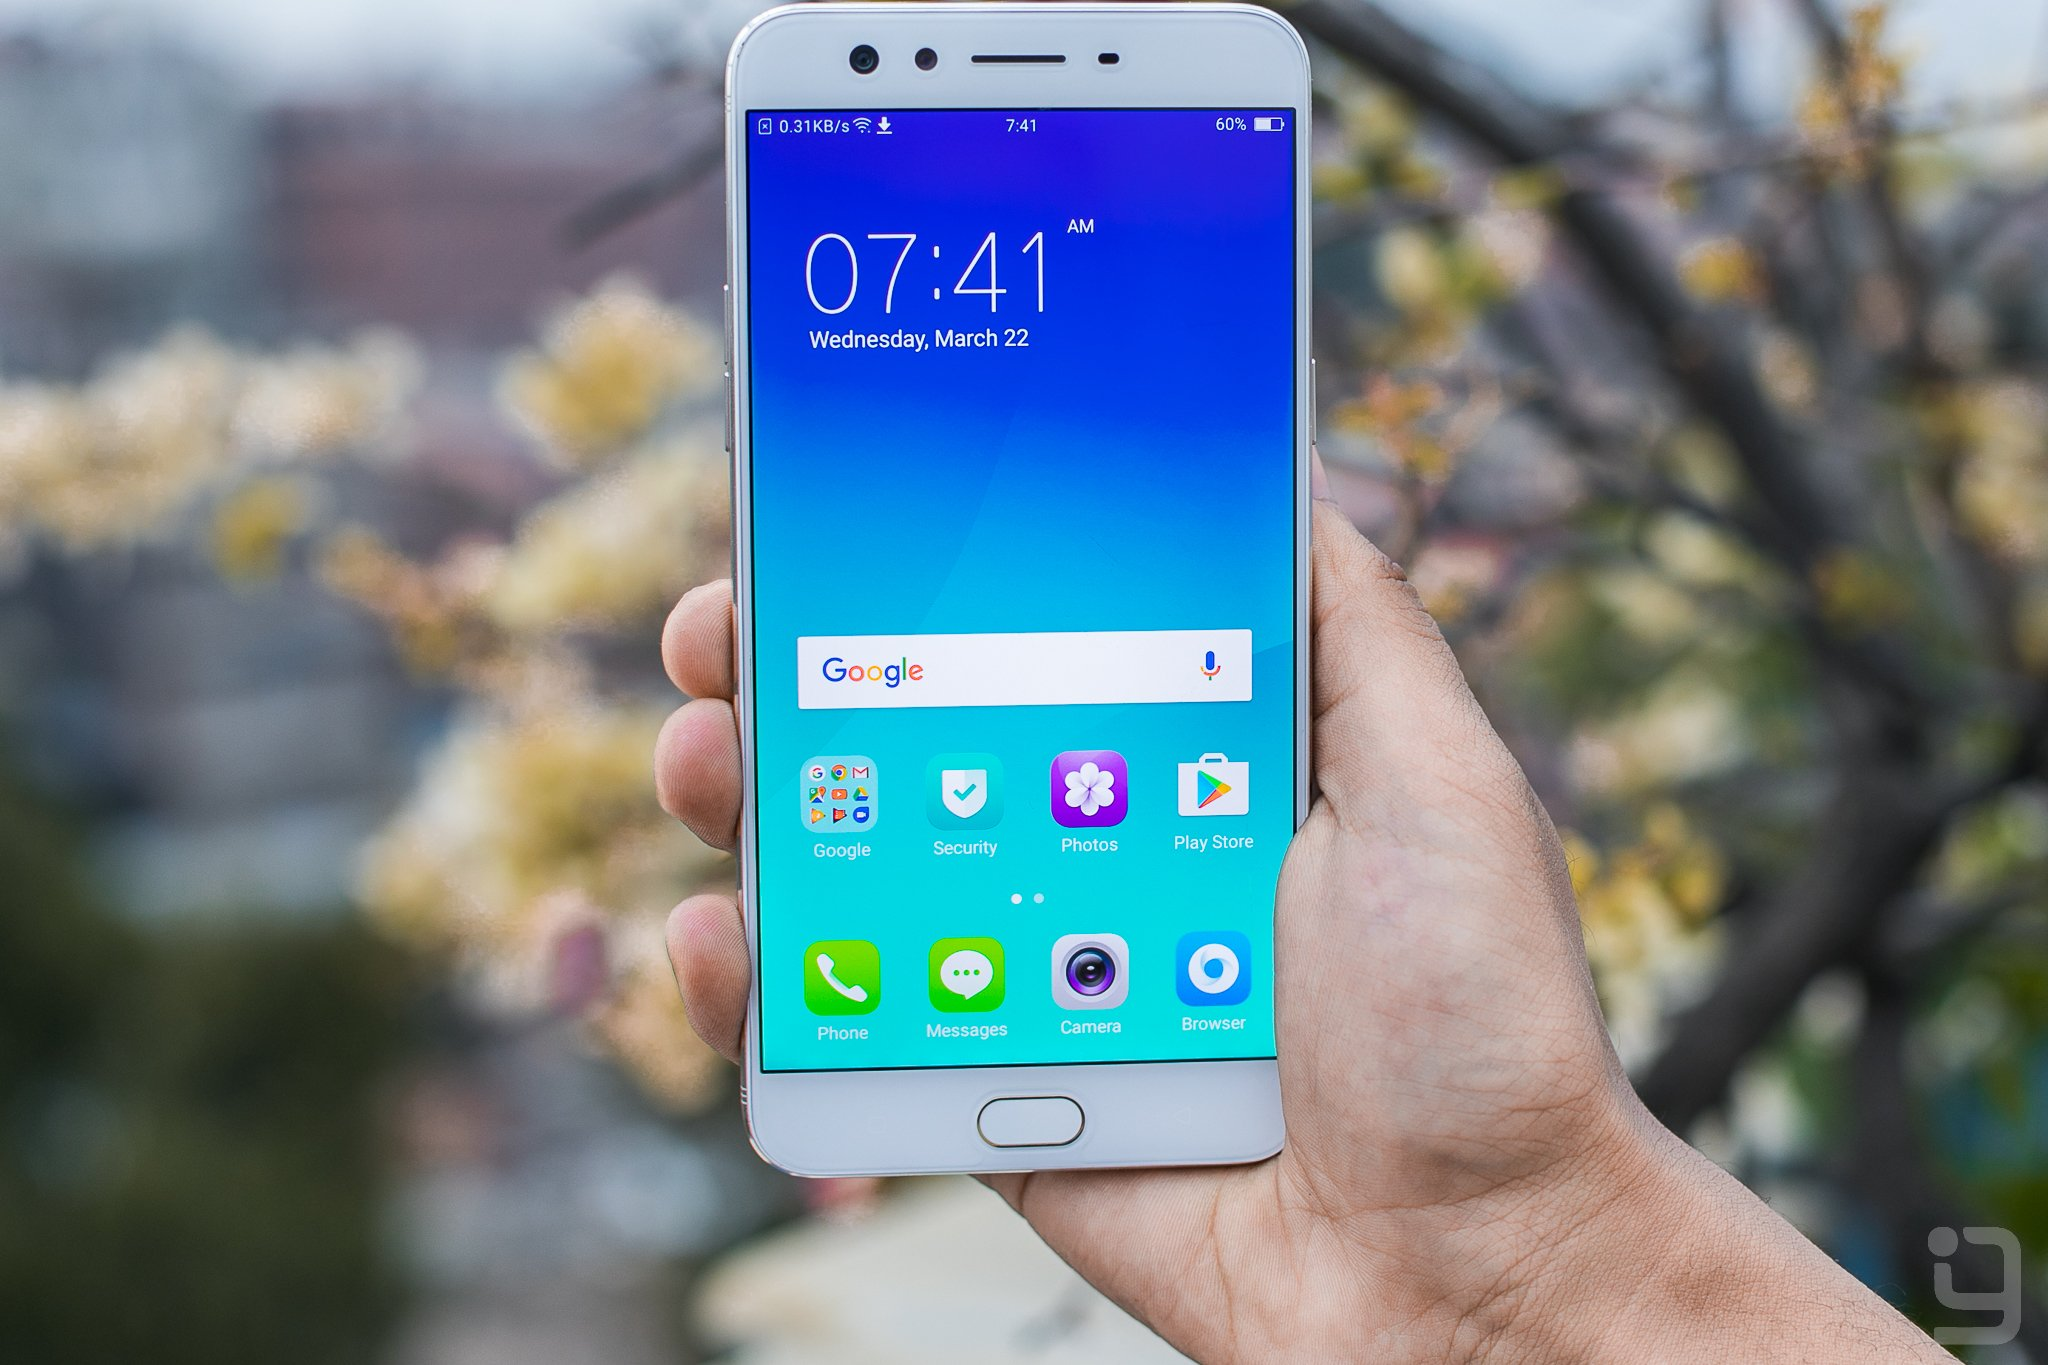 oppo f3 plus display review